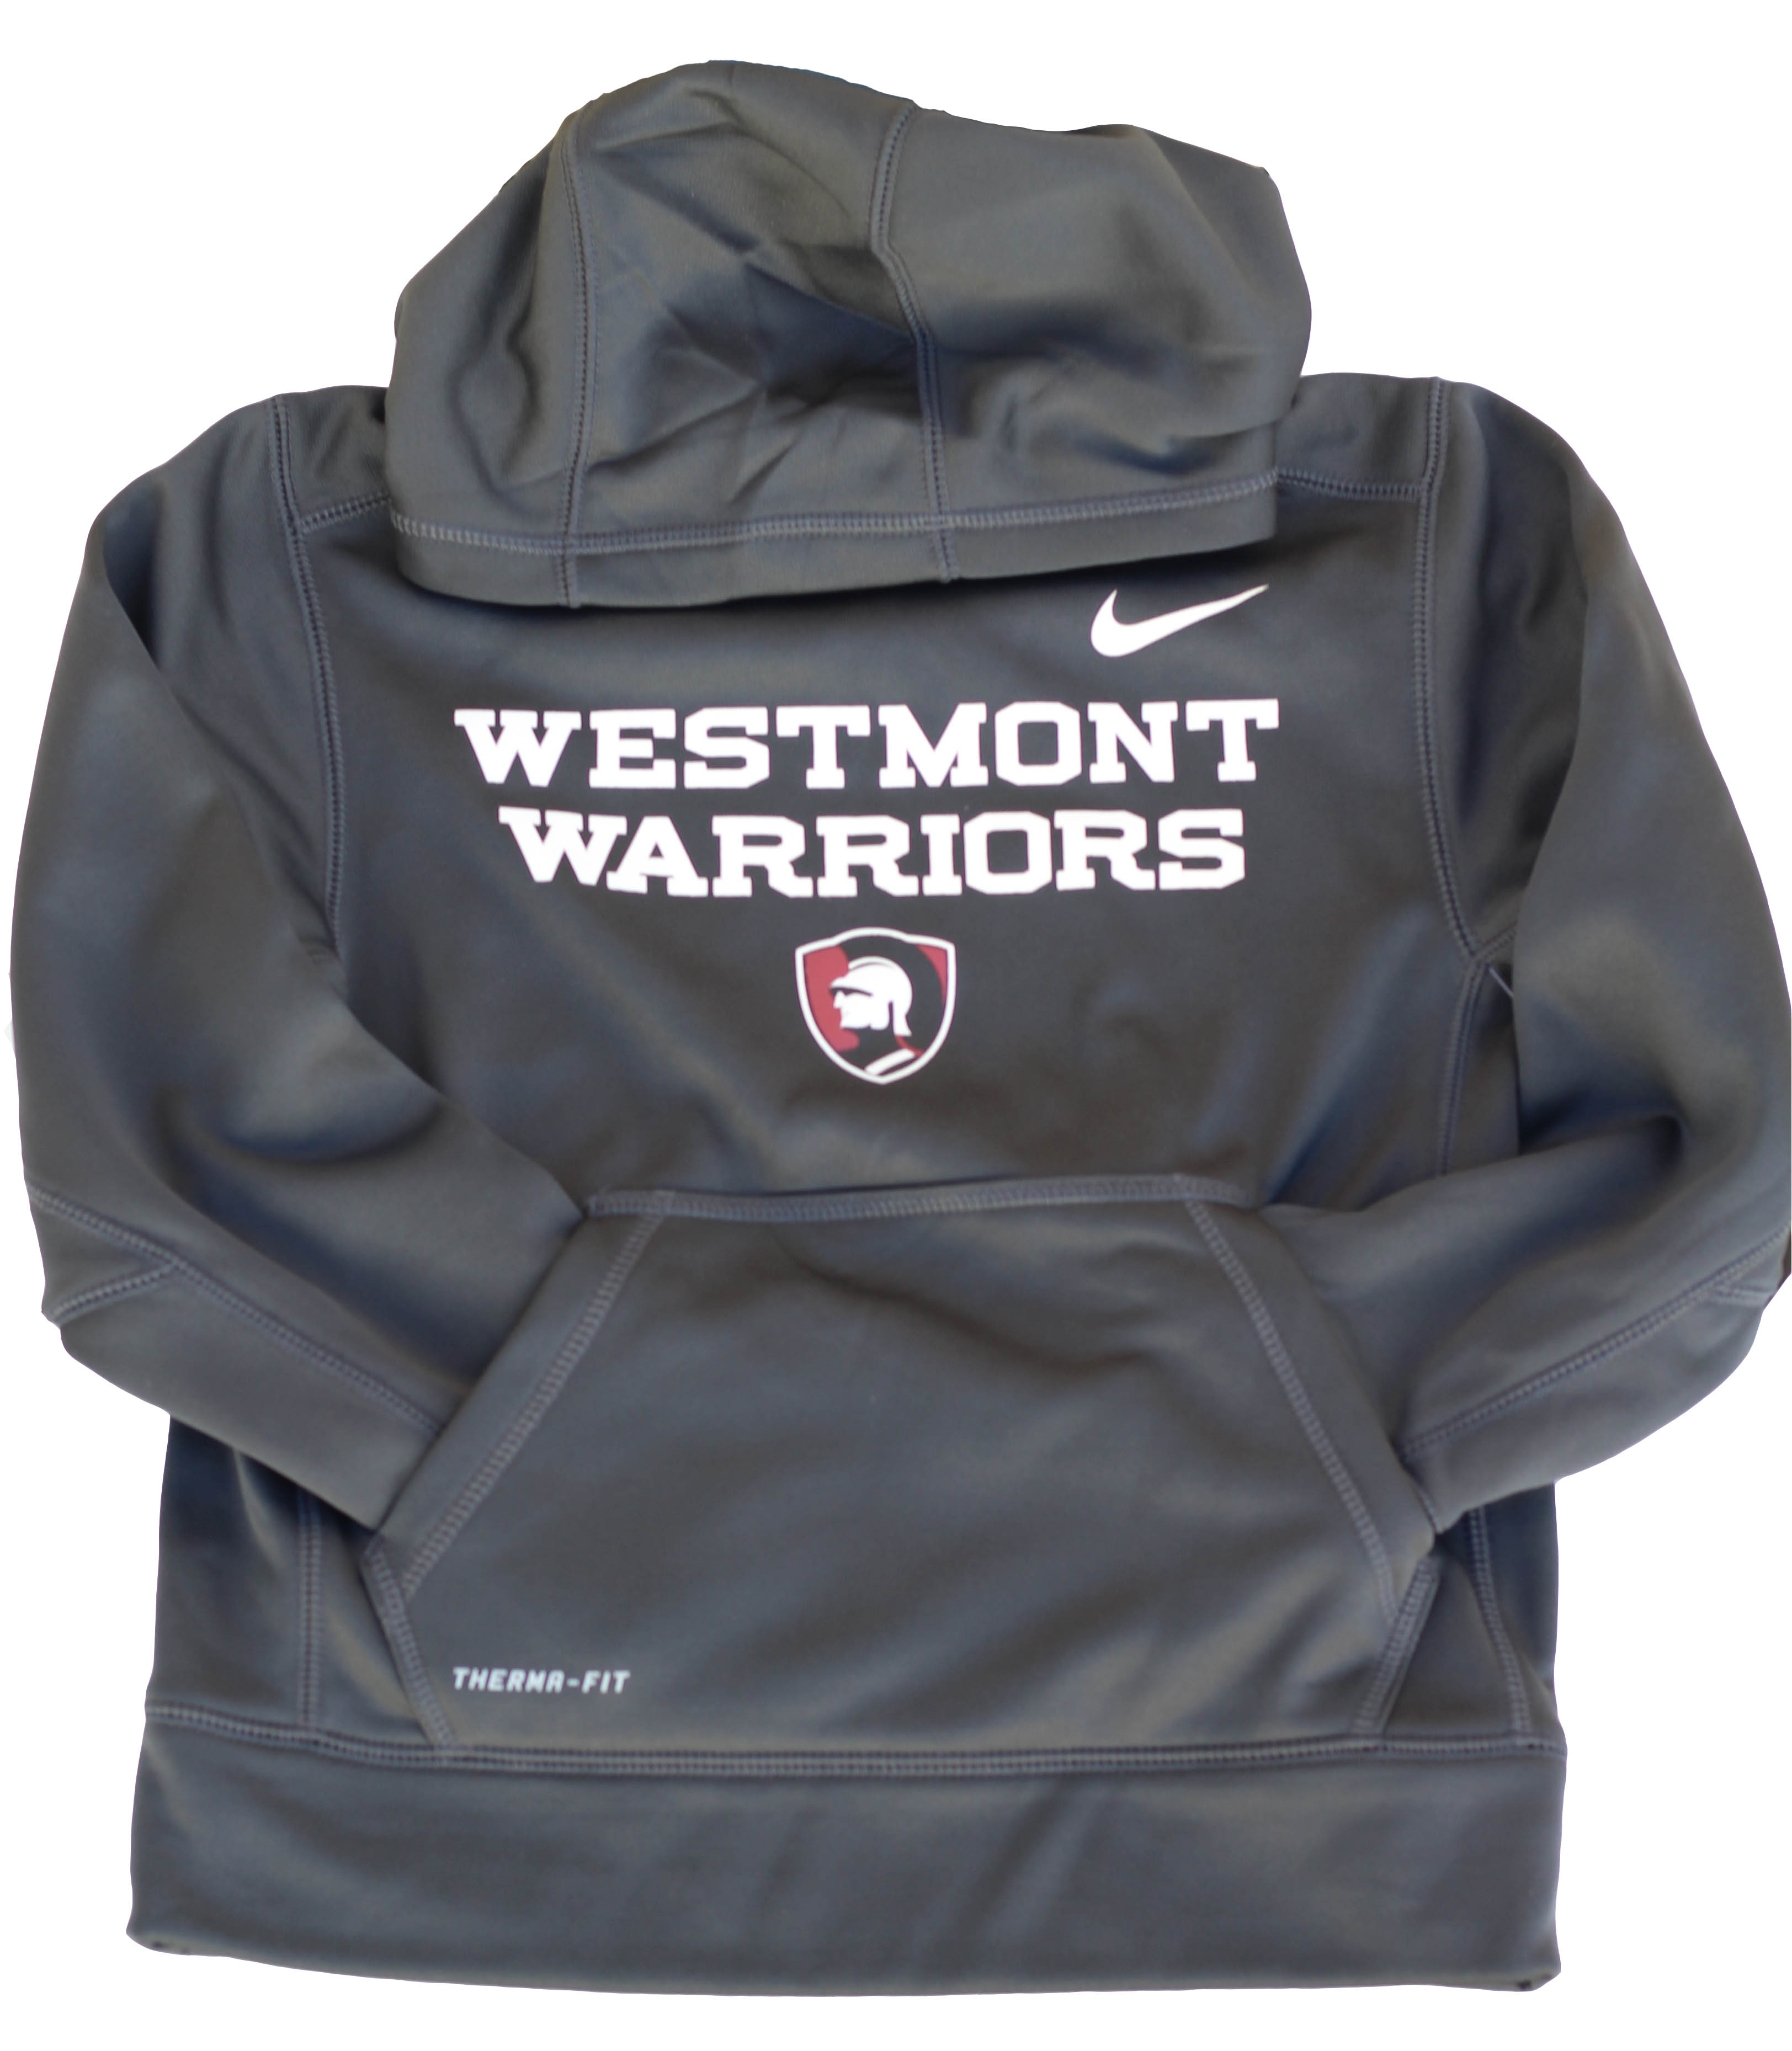 Image for the Youth Nike Knockout Hoodie product